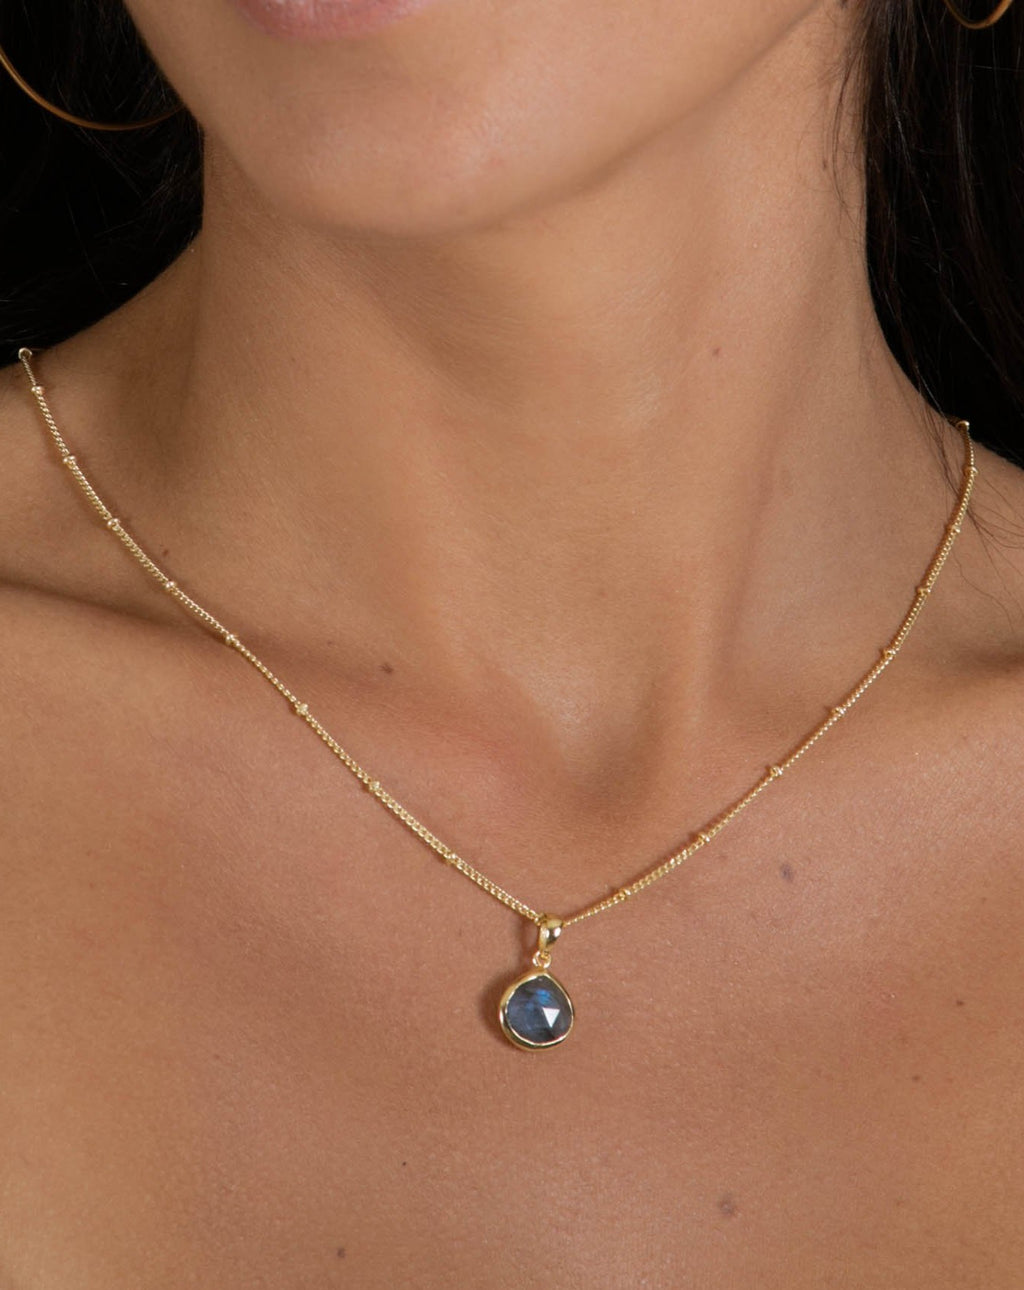 Ana Necklace * Labradorite * Gold Vermeil * BJN010